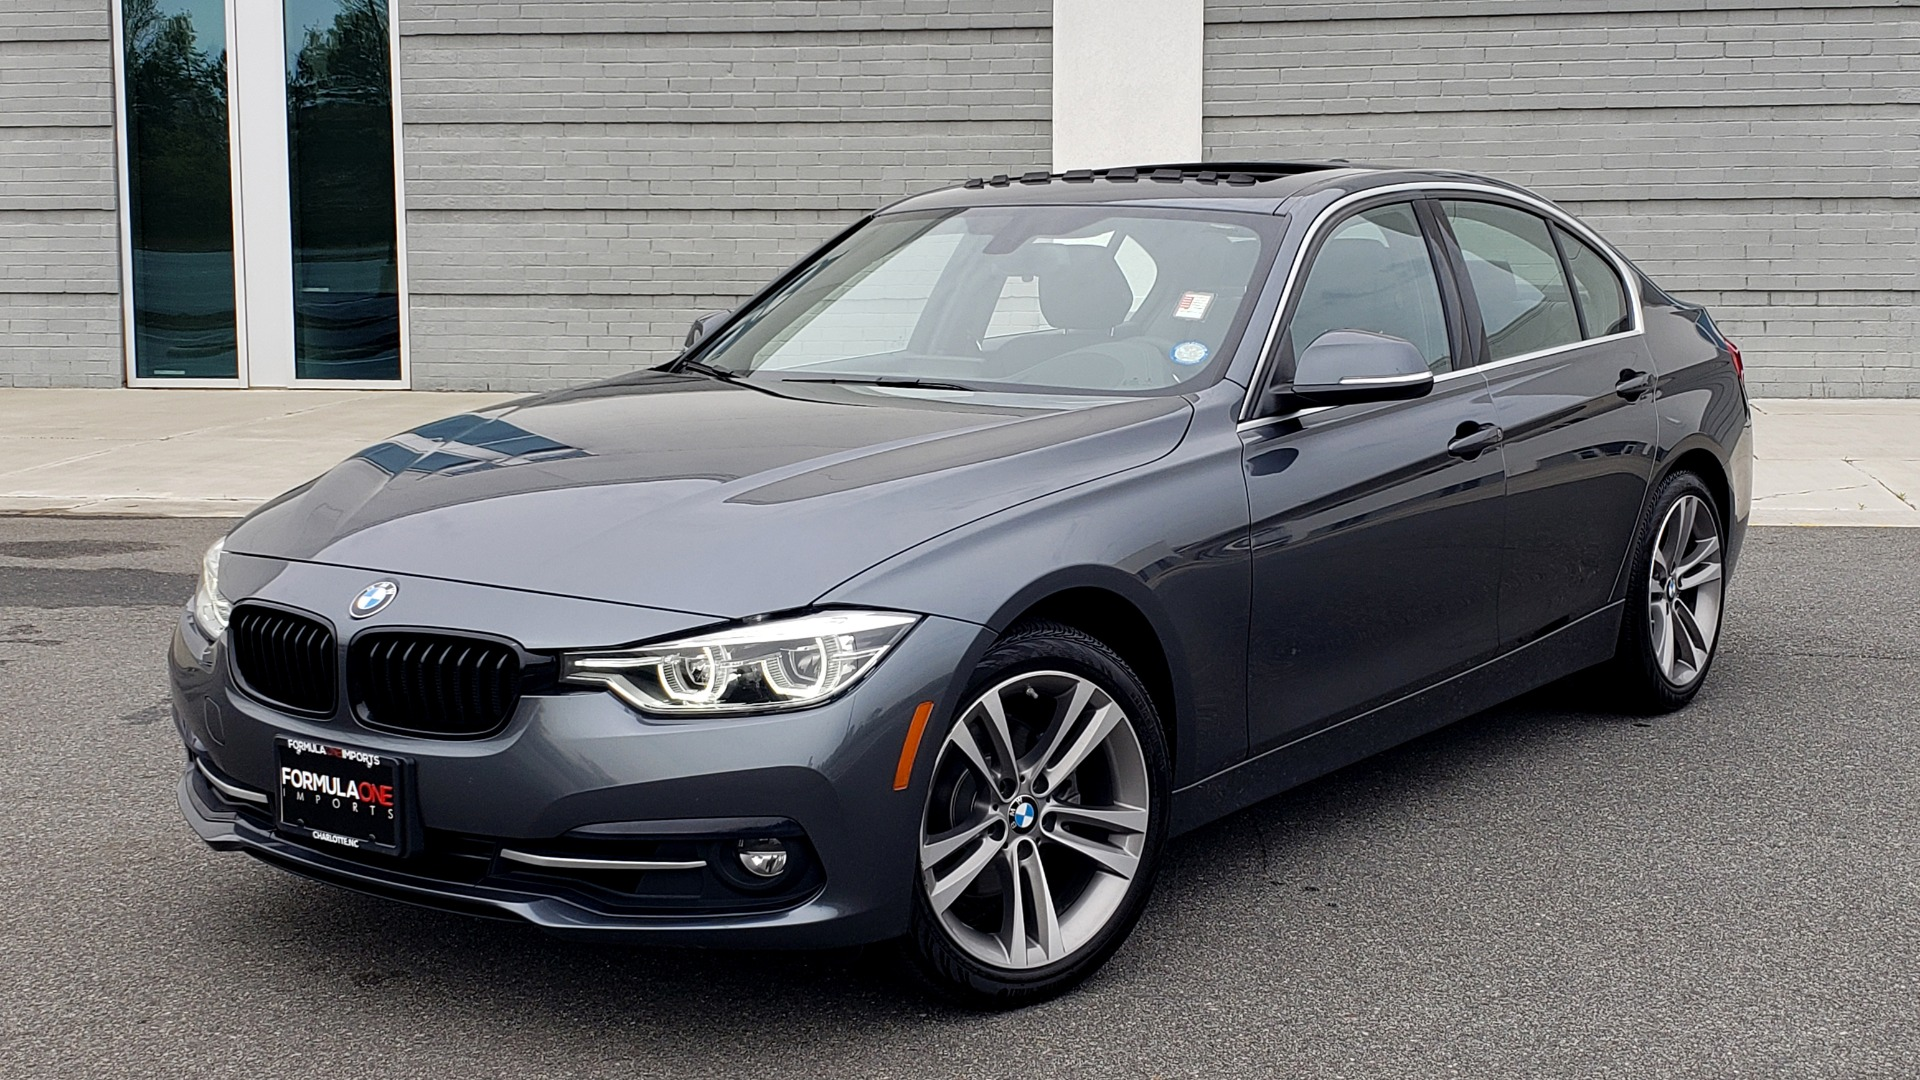 Used 2018 BMW 3 SERIES 330I XDRIVE PREMIUM / CONV PKG NAV / BLIND SPOT / HTD STS / REARVIEW for sale $22,695 at Formula Imports in Charlotte NC 28227 1